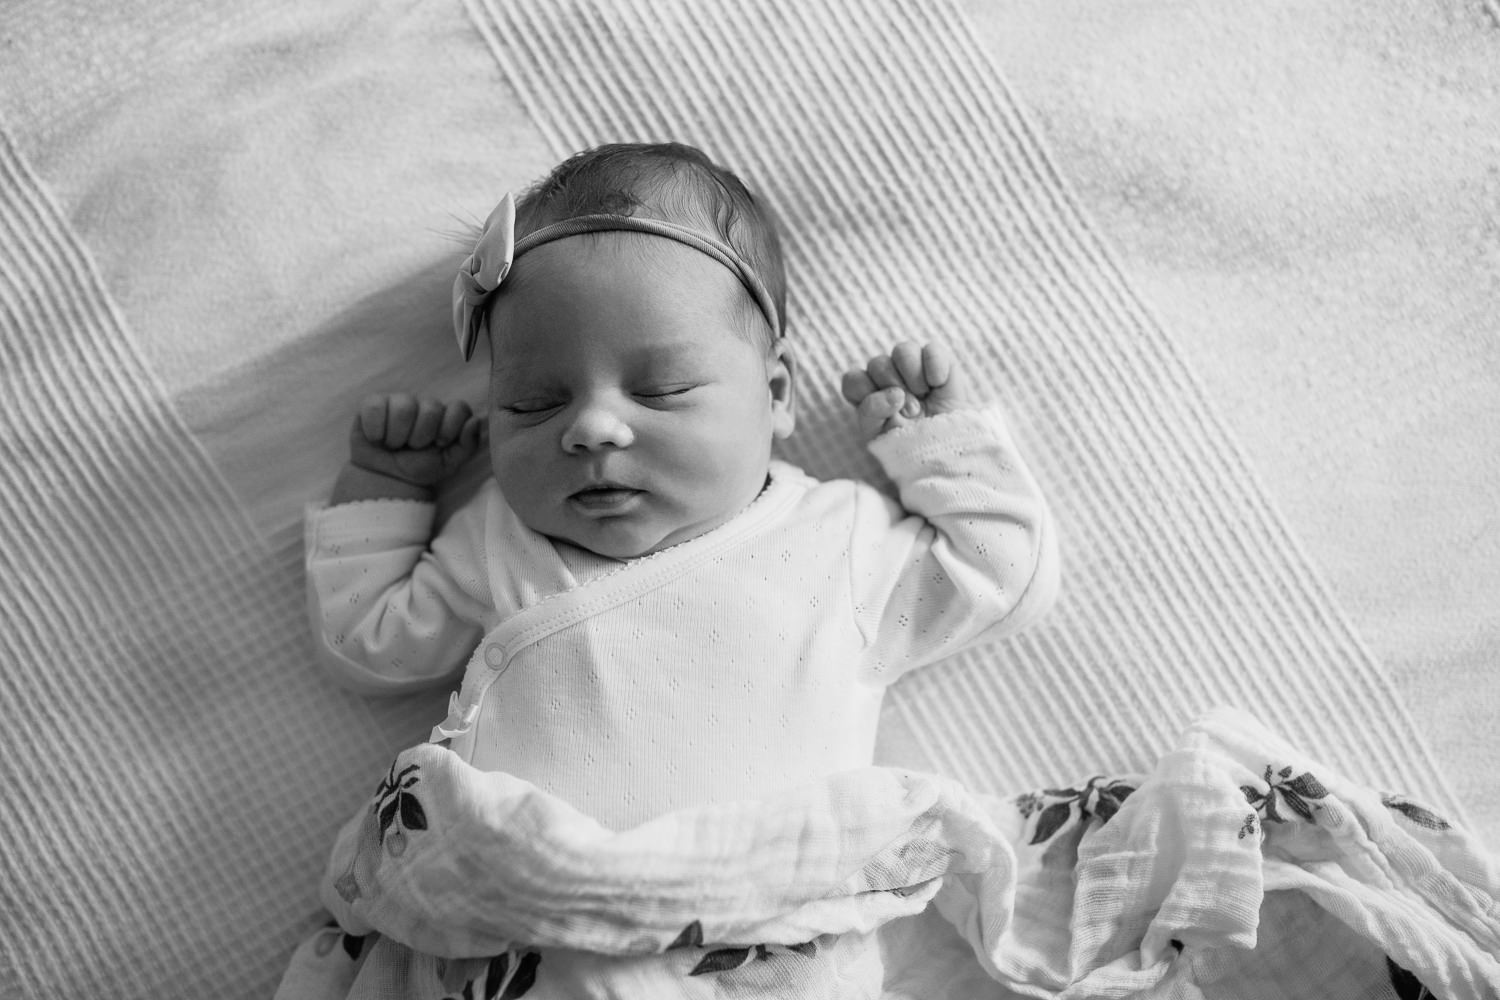 2 week old baby girl with dark hair in white onesie lying on swaddle, wearing bow headband asleep on bed, hands near face -York Region In-Home Photography